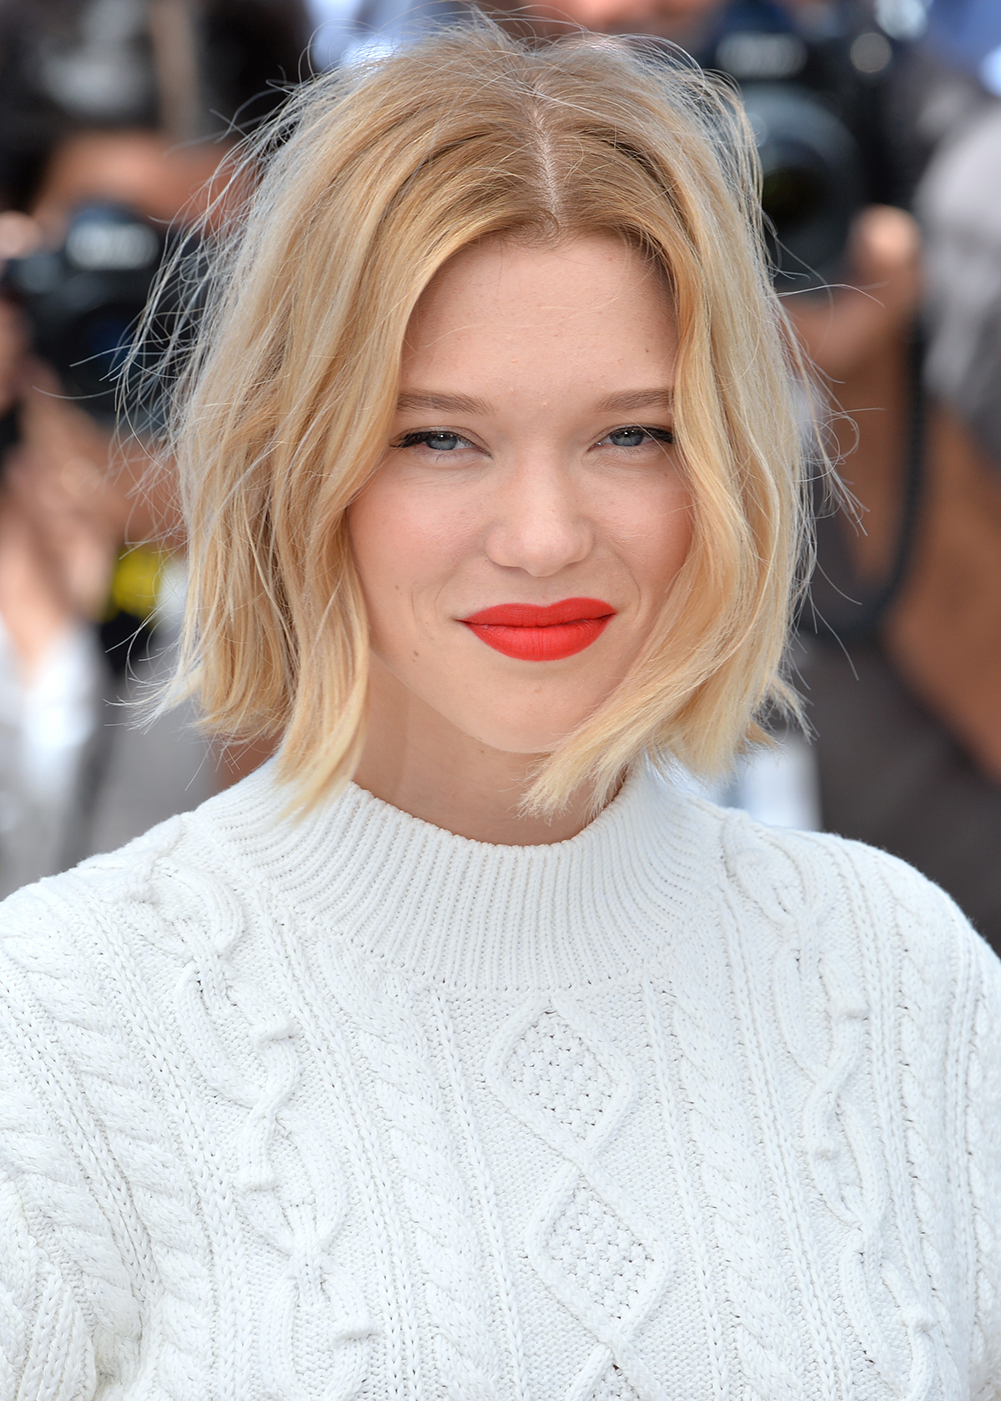 Short Hair Styles Find The Best Bob For Your Face Shape And Hair Type Marie Claire Australia